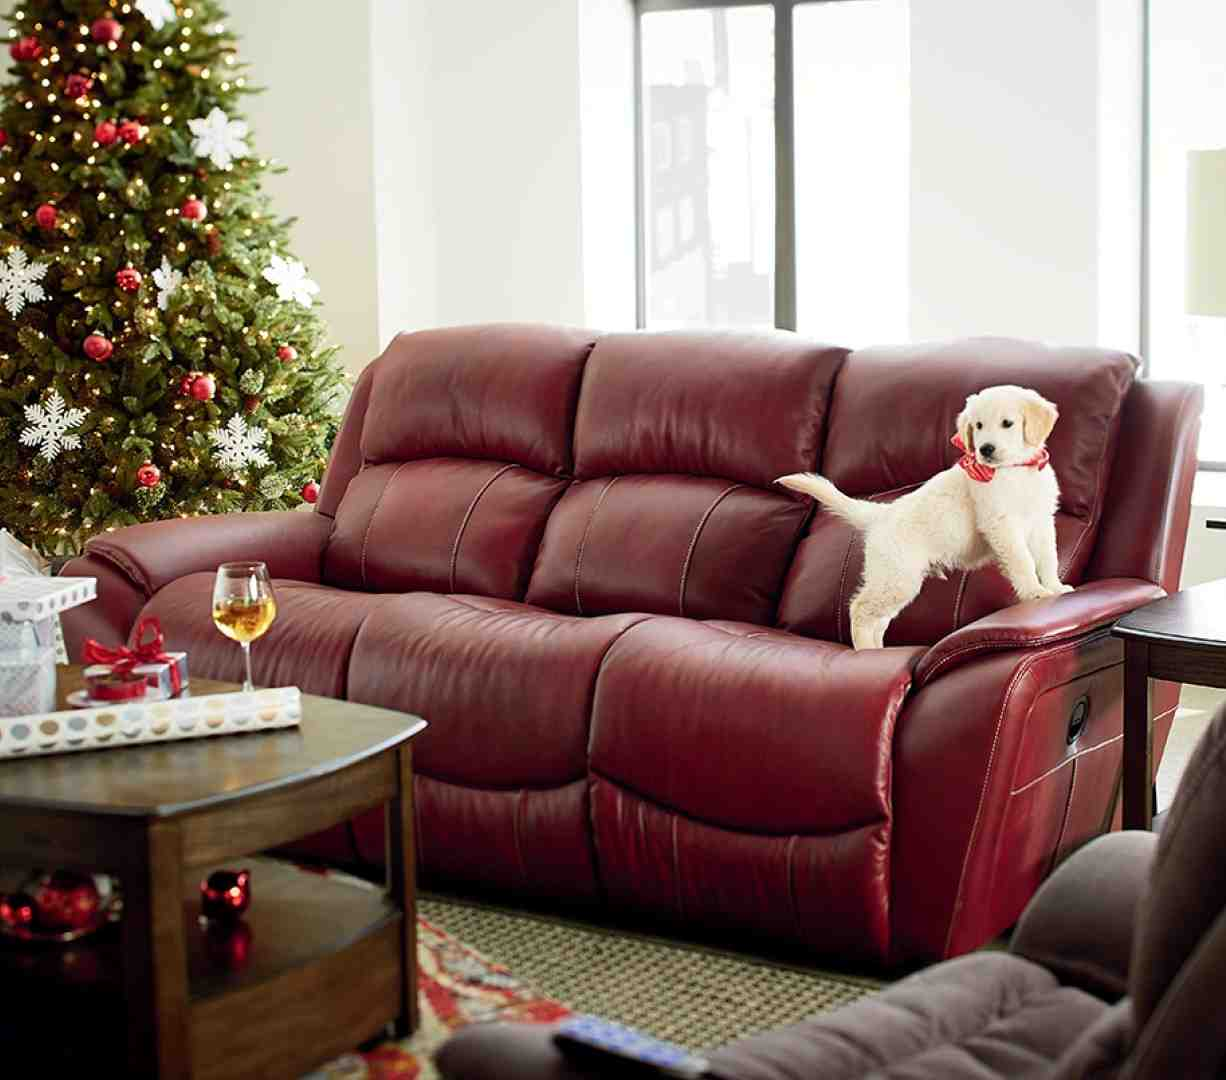 Transform your living room and bedroom with La-Z-Boy's comfortable home furniture. Shop for sofas, couches, recliners, chairs, tables, and more today.